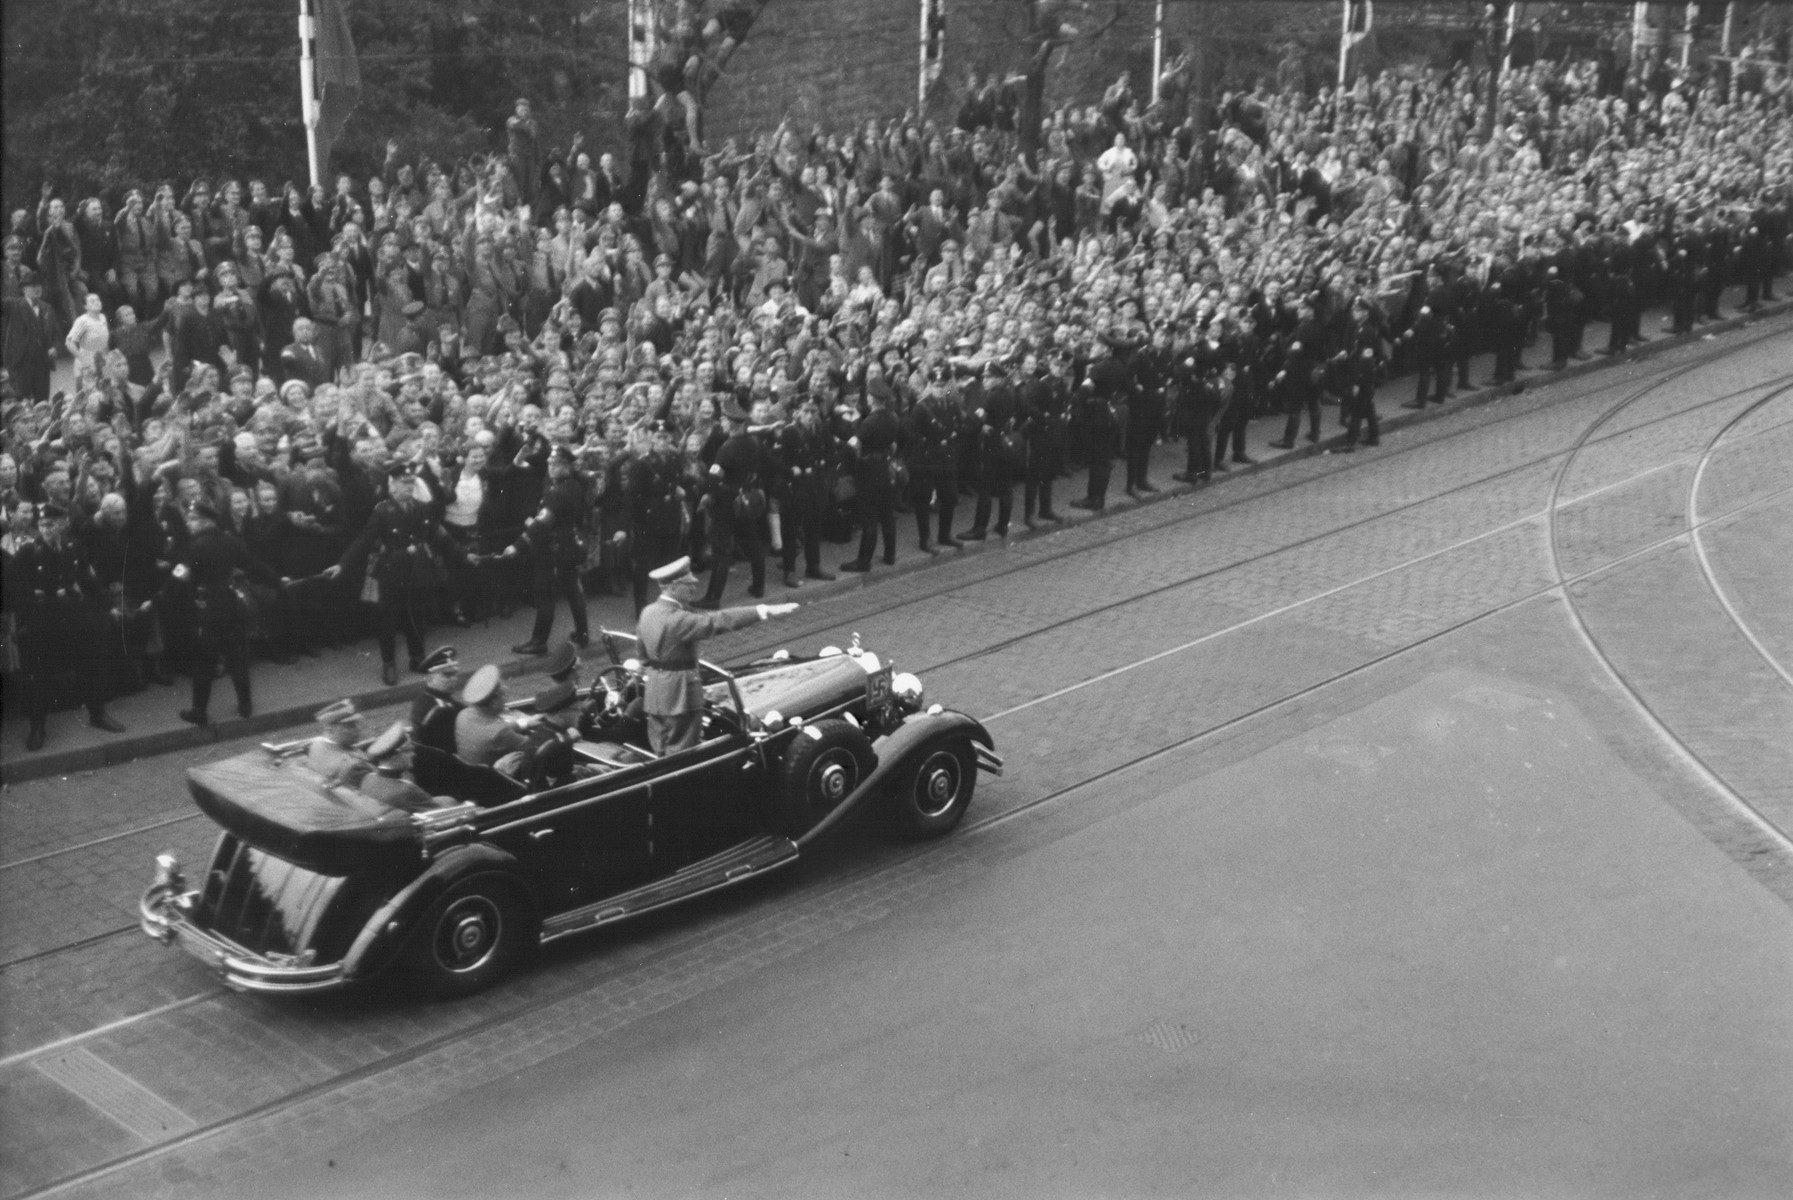 Standing in an open car, Adolf Hitler salutes the crowd that lines the street as he rides towards the hall where he will officially open the Great Anti-Bolshevism Exhibition 1937 (Grosse Antibolschewistische Ausstellung) in Nuremberg.